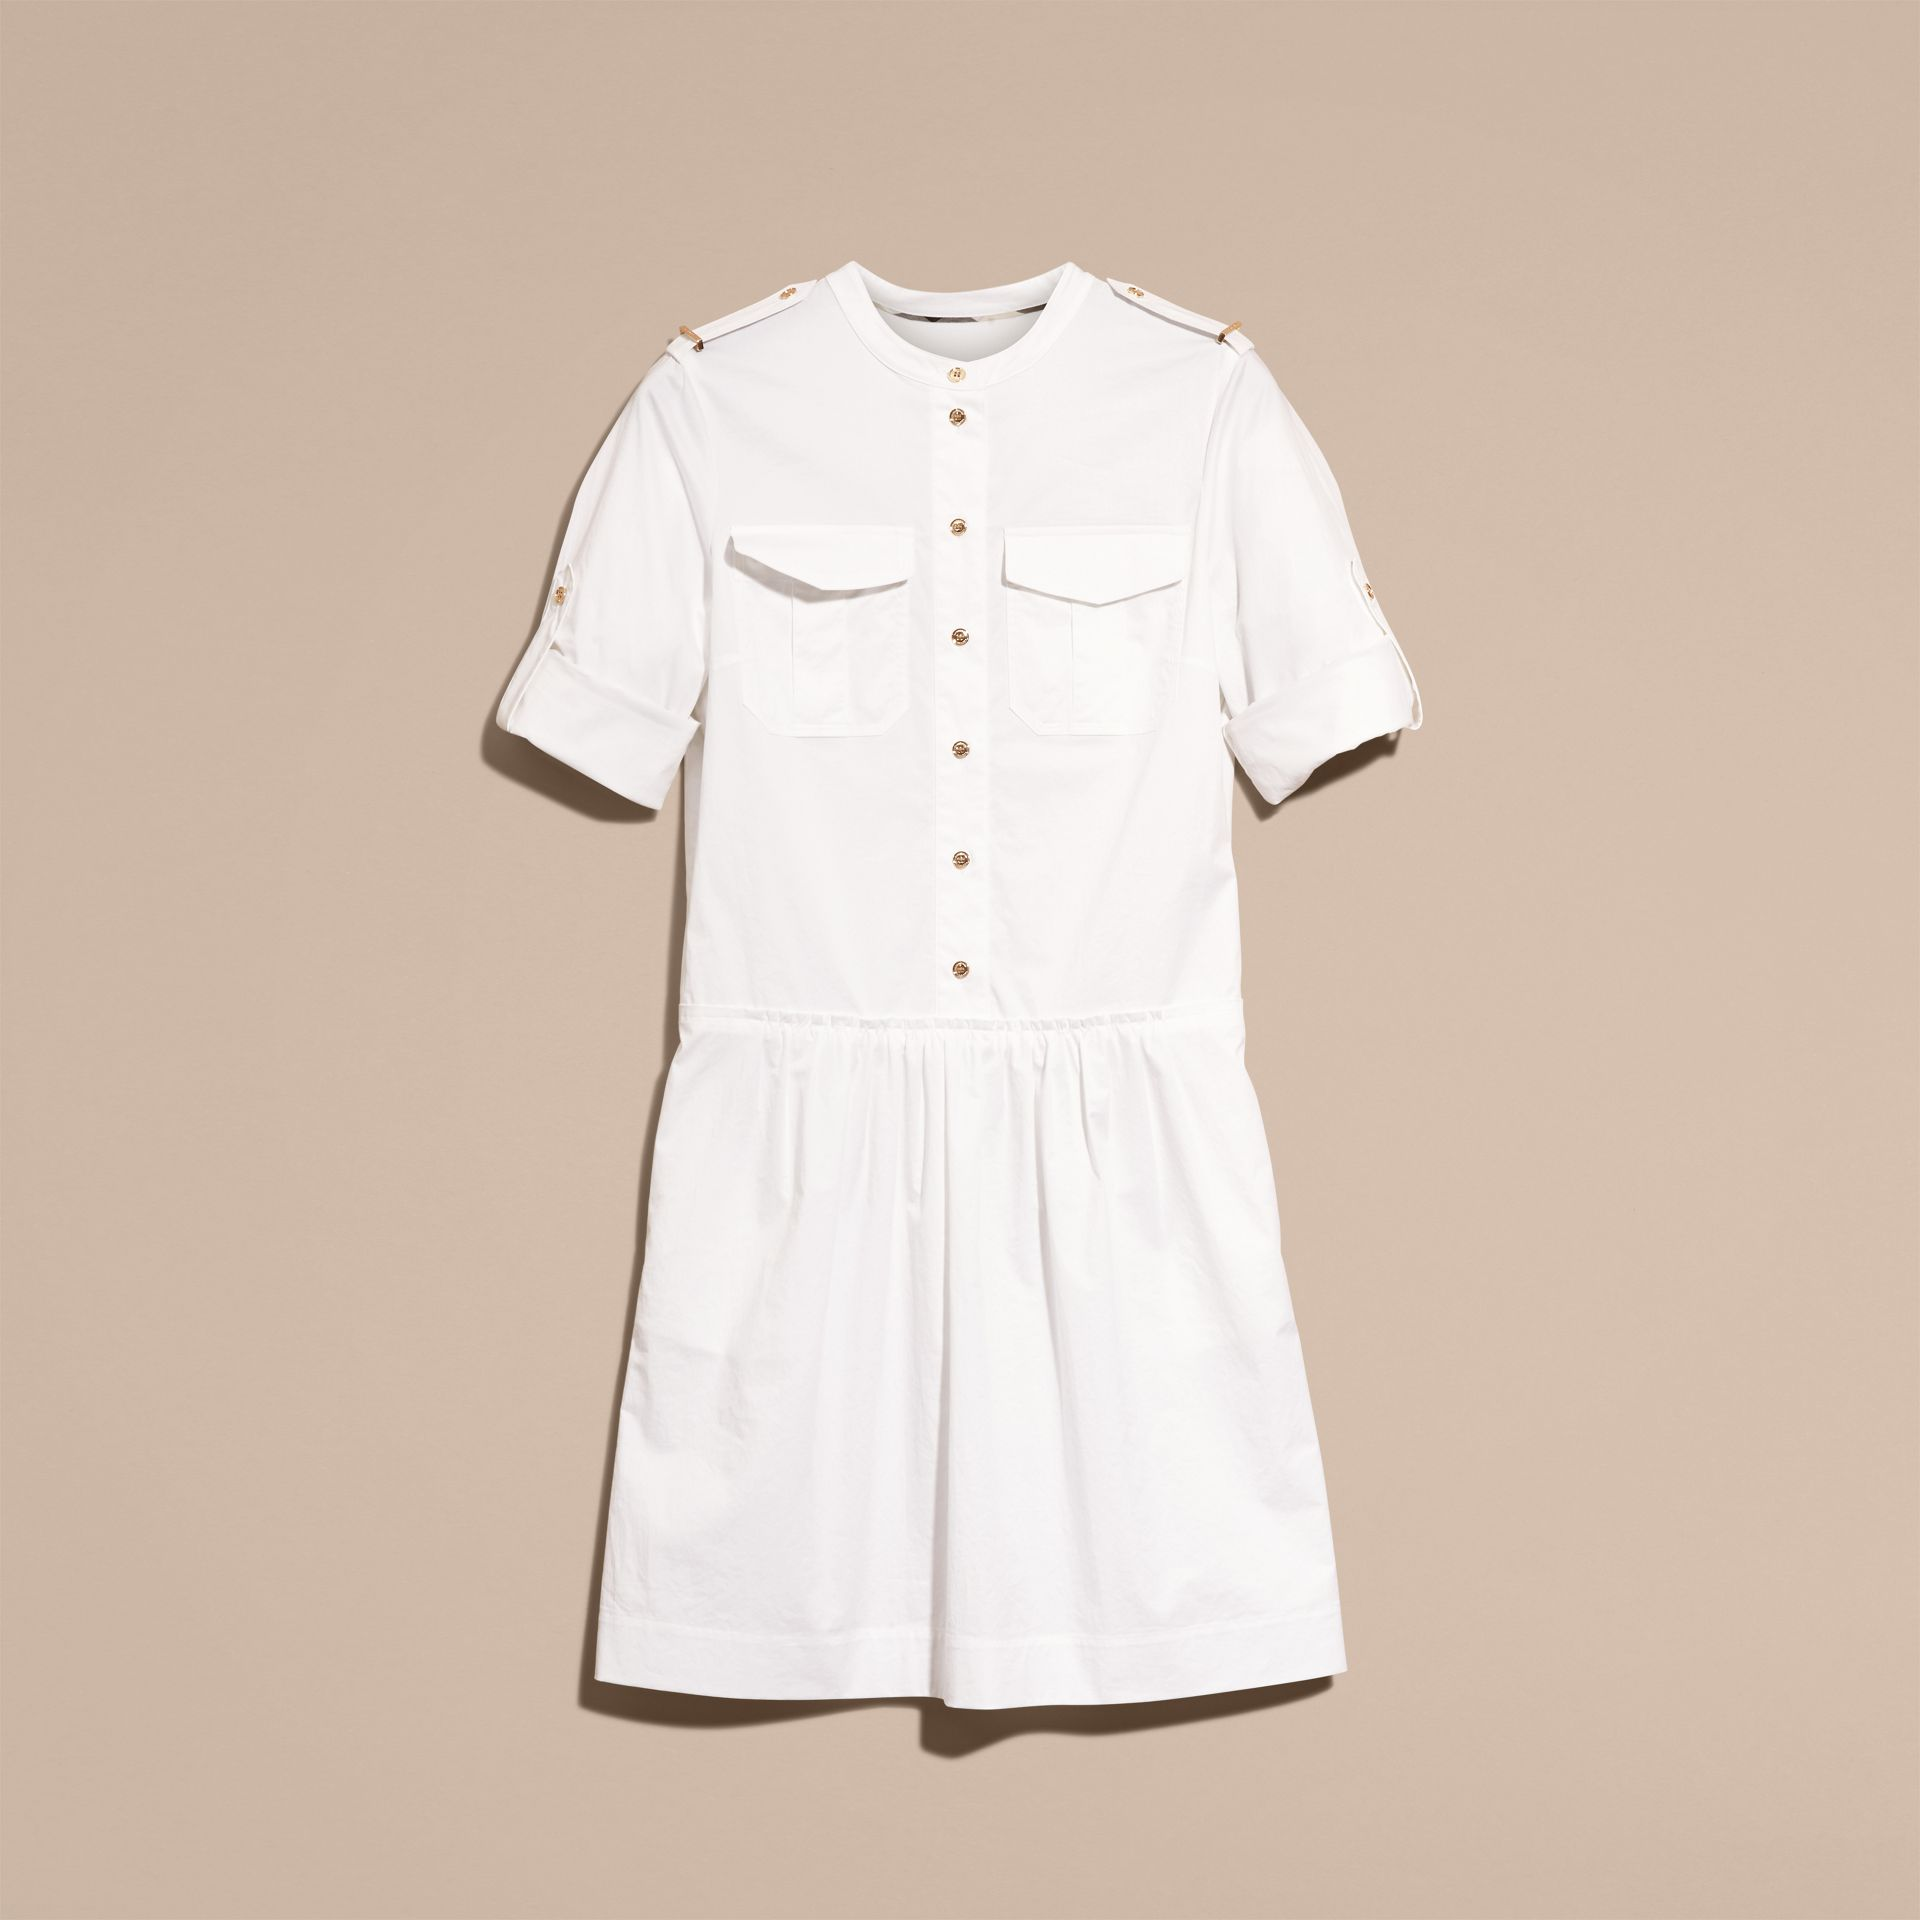 White Military-inspired Cotton Blend Shirt Dress White - gallery image 4